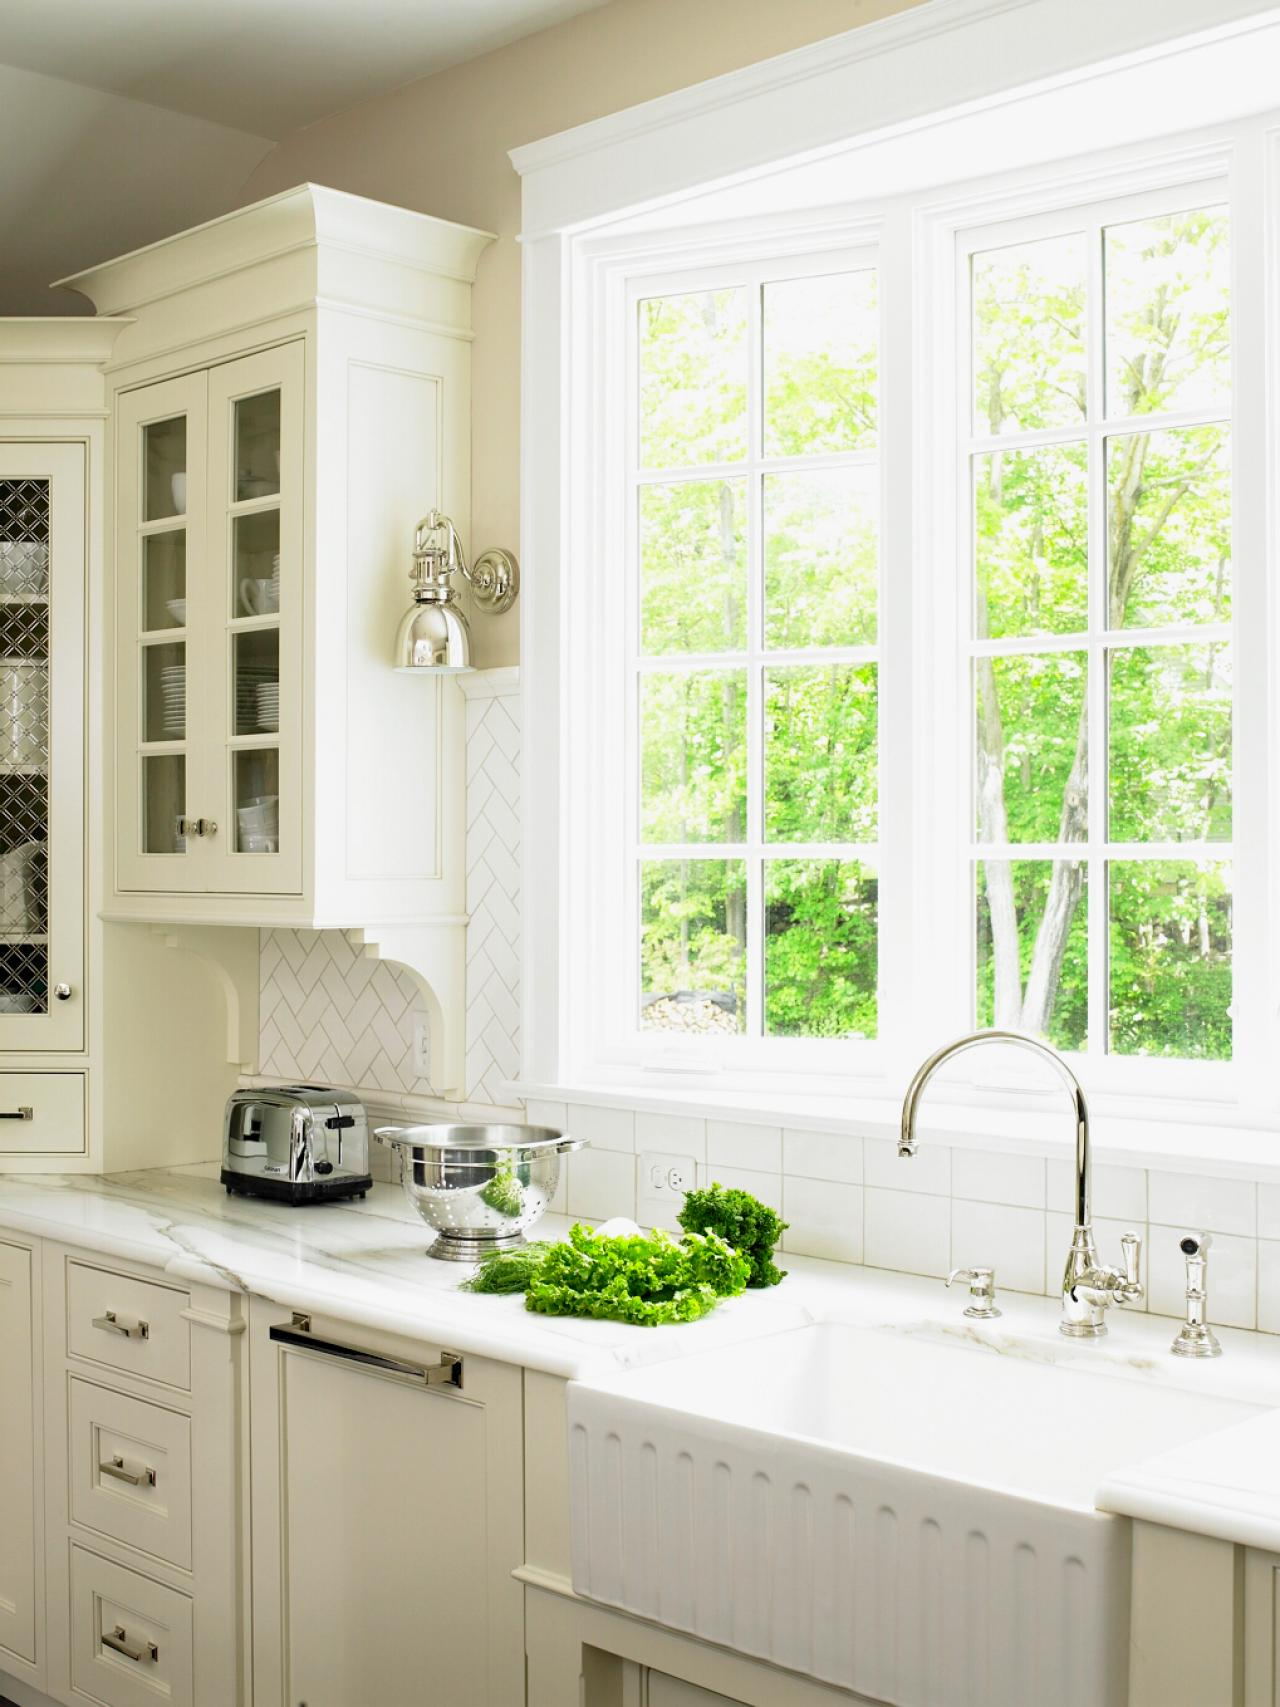 awesome Window Over Sink In Kitchen #5: HGTV.com